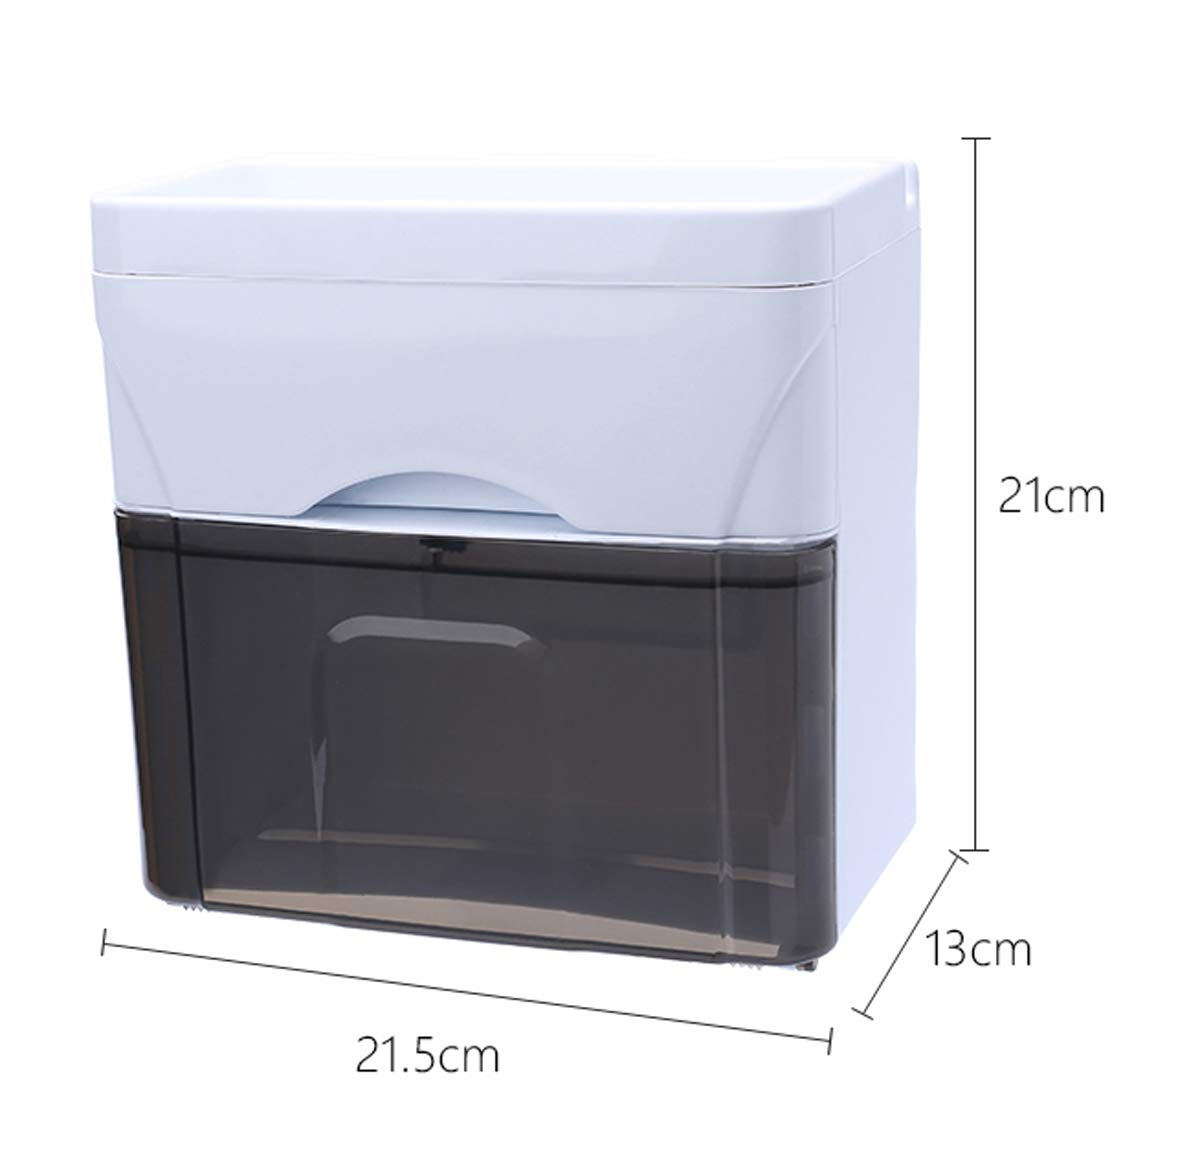 Q&F Wall Mount Toilet Paper Holder, Tissue Holder With Storage Box-waterproof, Moisture Proof-plastic-A by Q&F (Image #2)